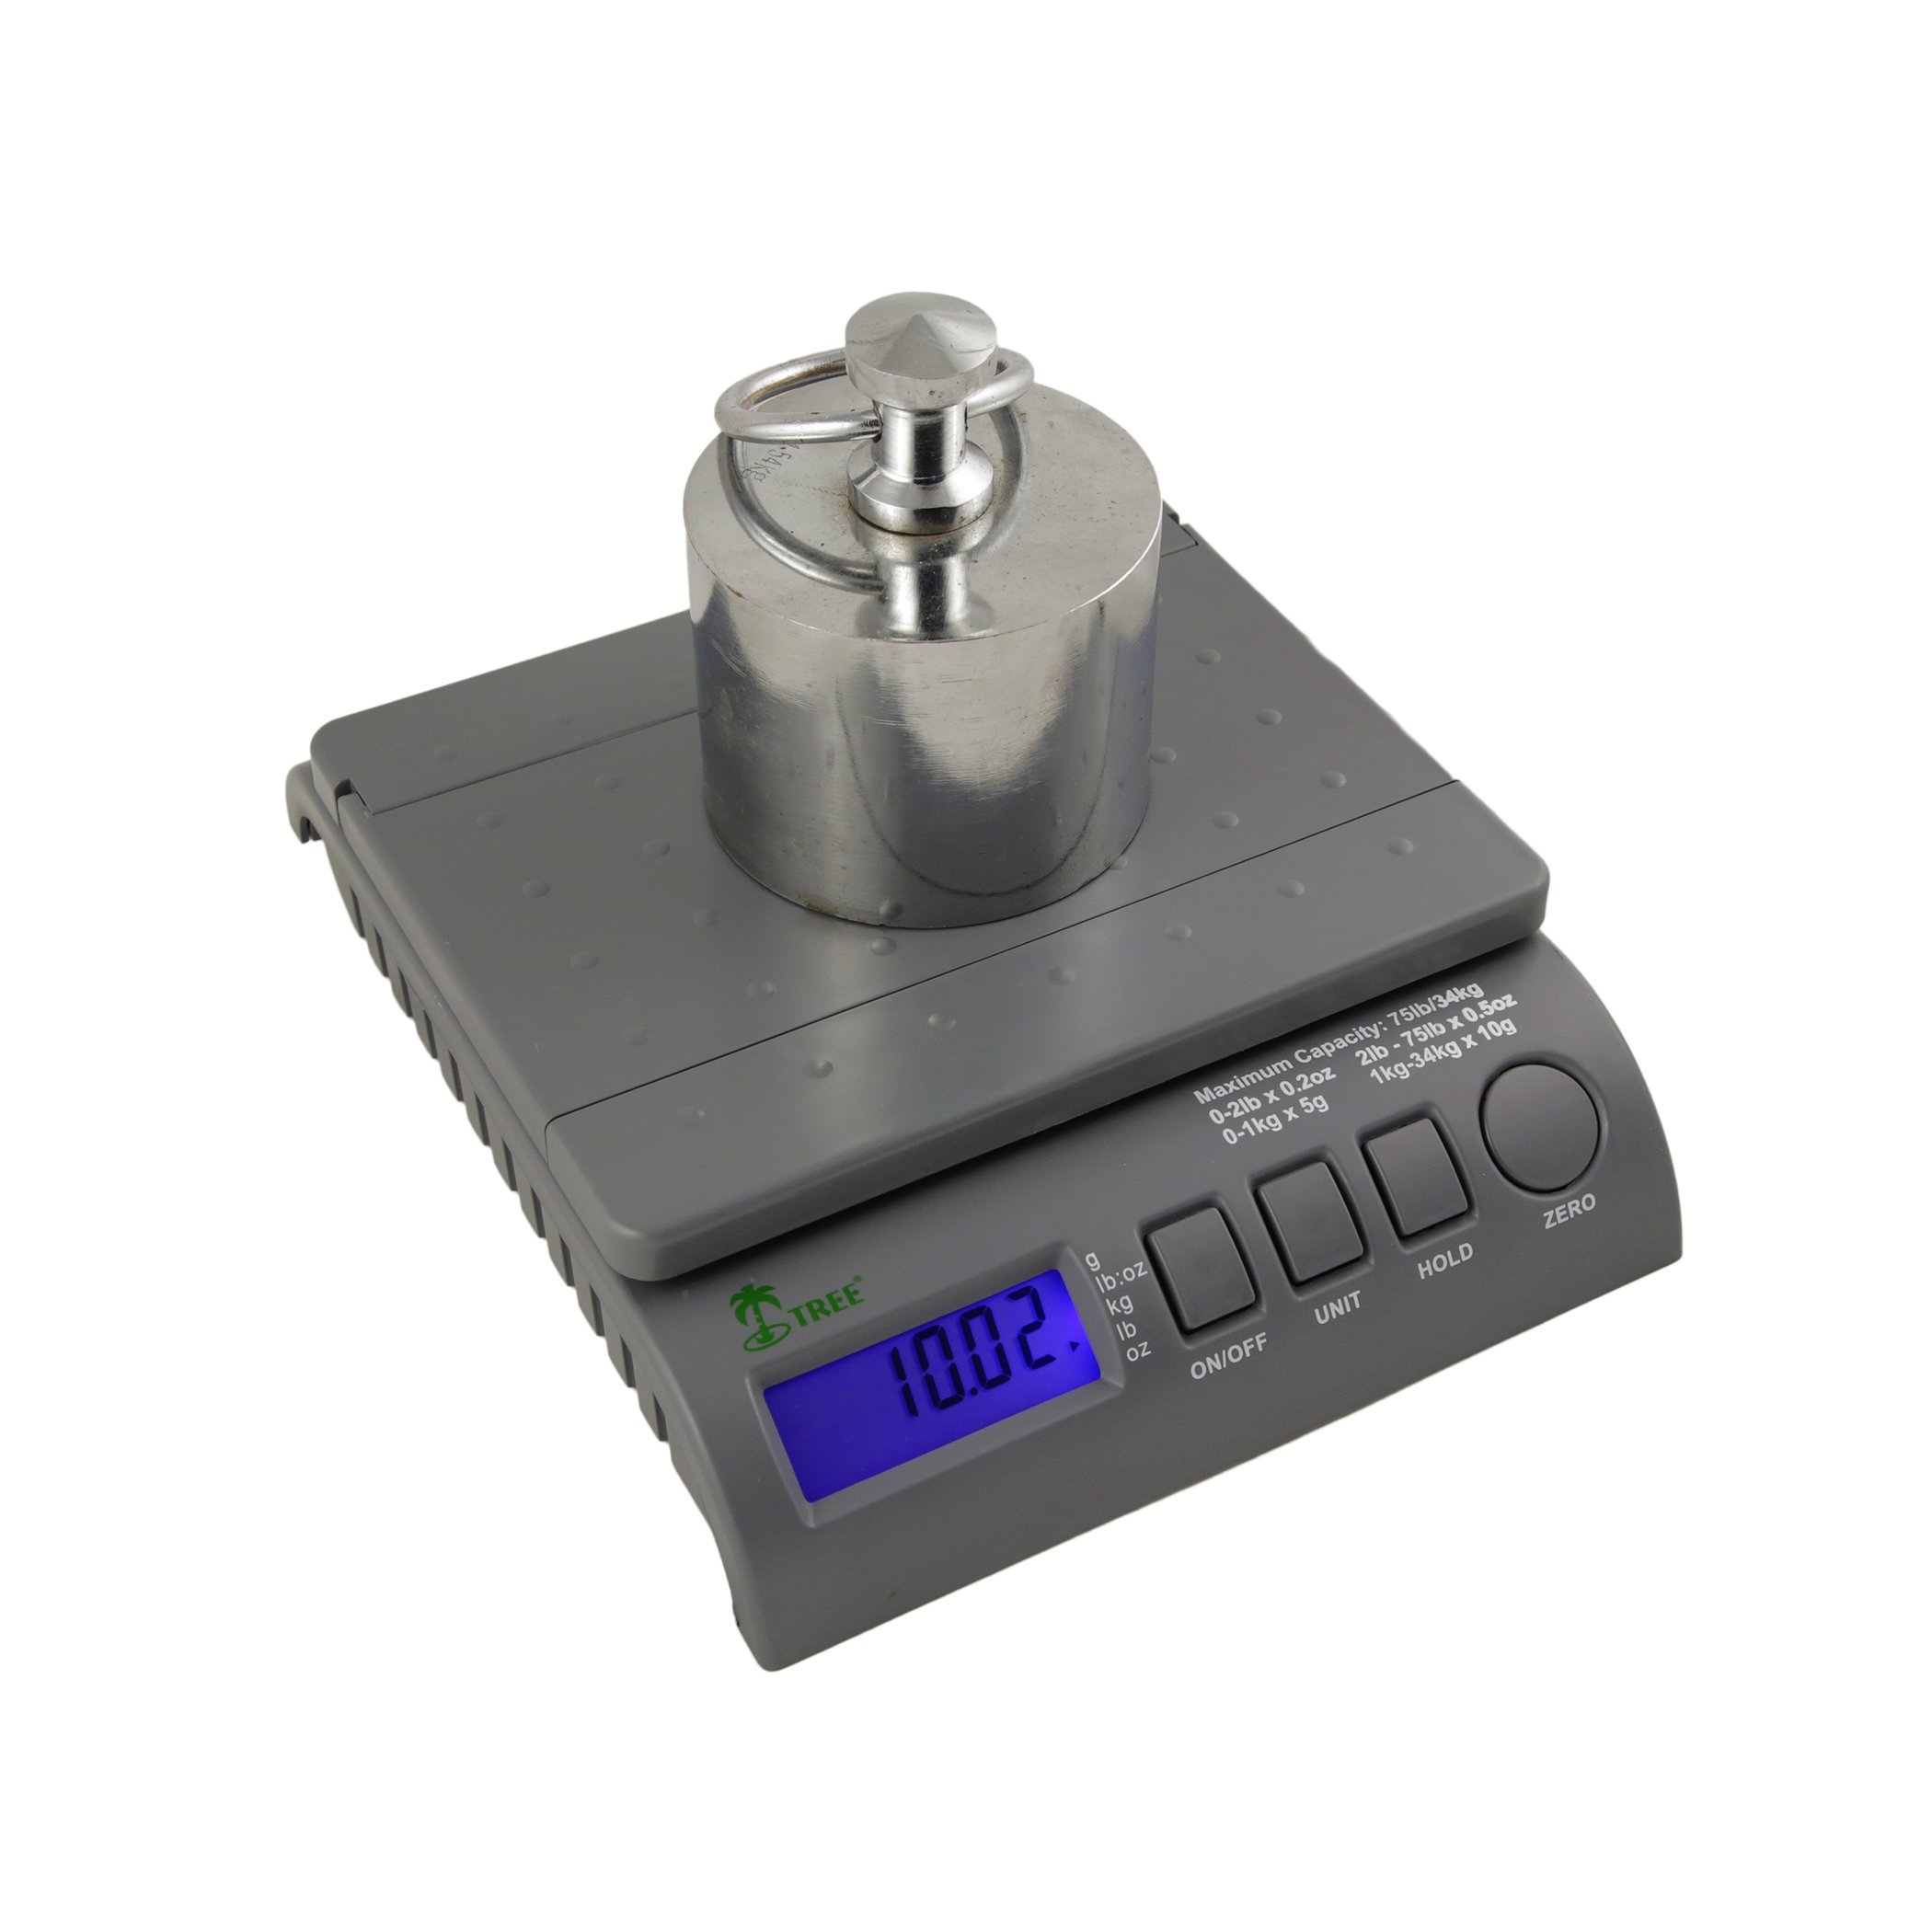 Digital Postal Shipping Postage Bench Scales 35 lbs by LW Measurements, LLC (Image #3)